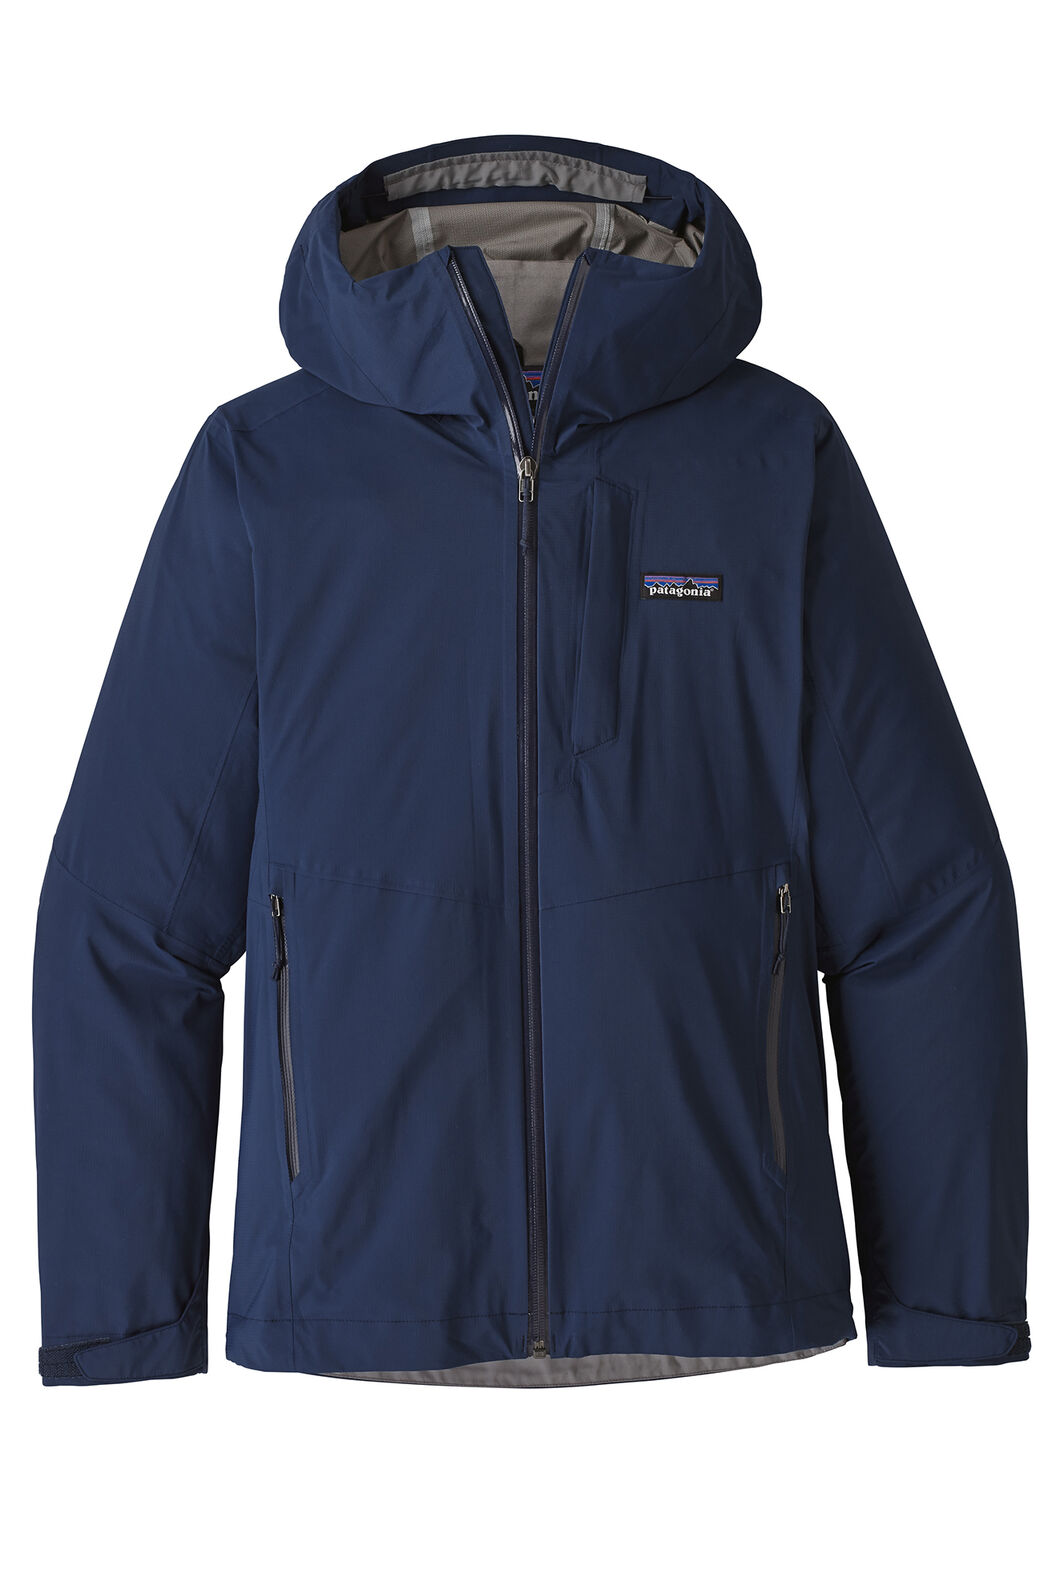 Patagonia W's Stretch Rainshadow Jacket, Classic Navy, hi-res